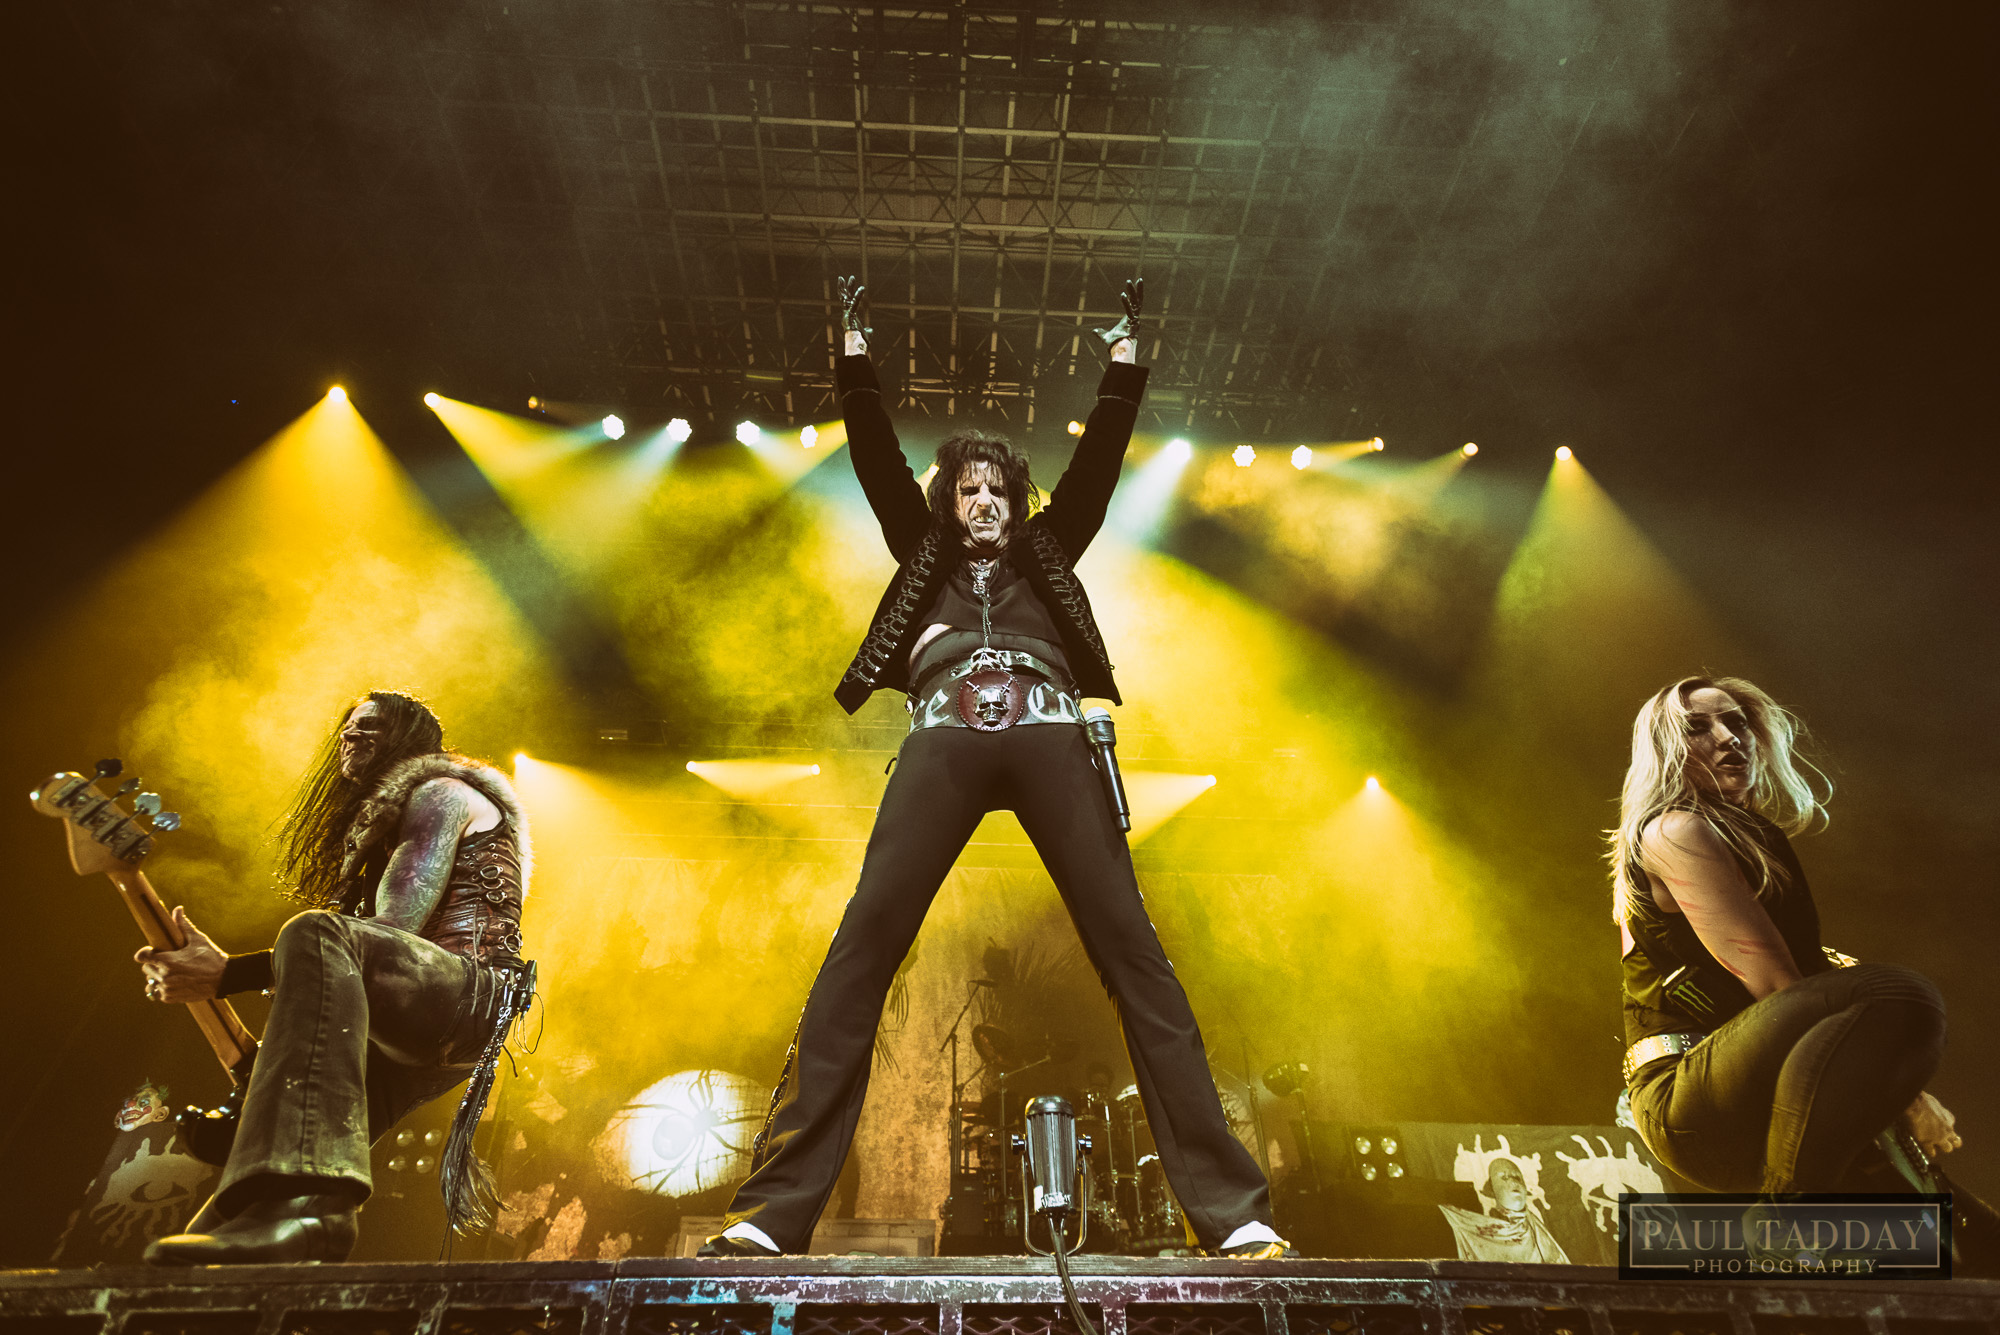 alice cooper - melbourne - paul tadday photography - 201017 - 5.jpg